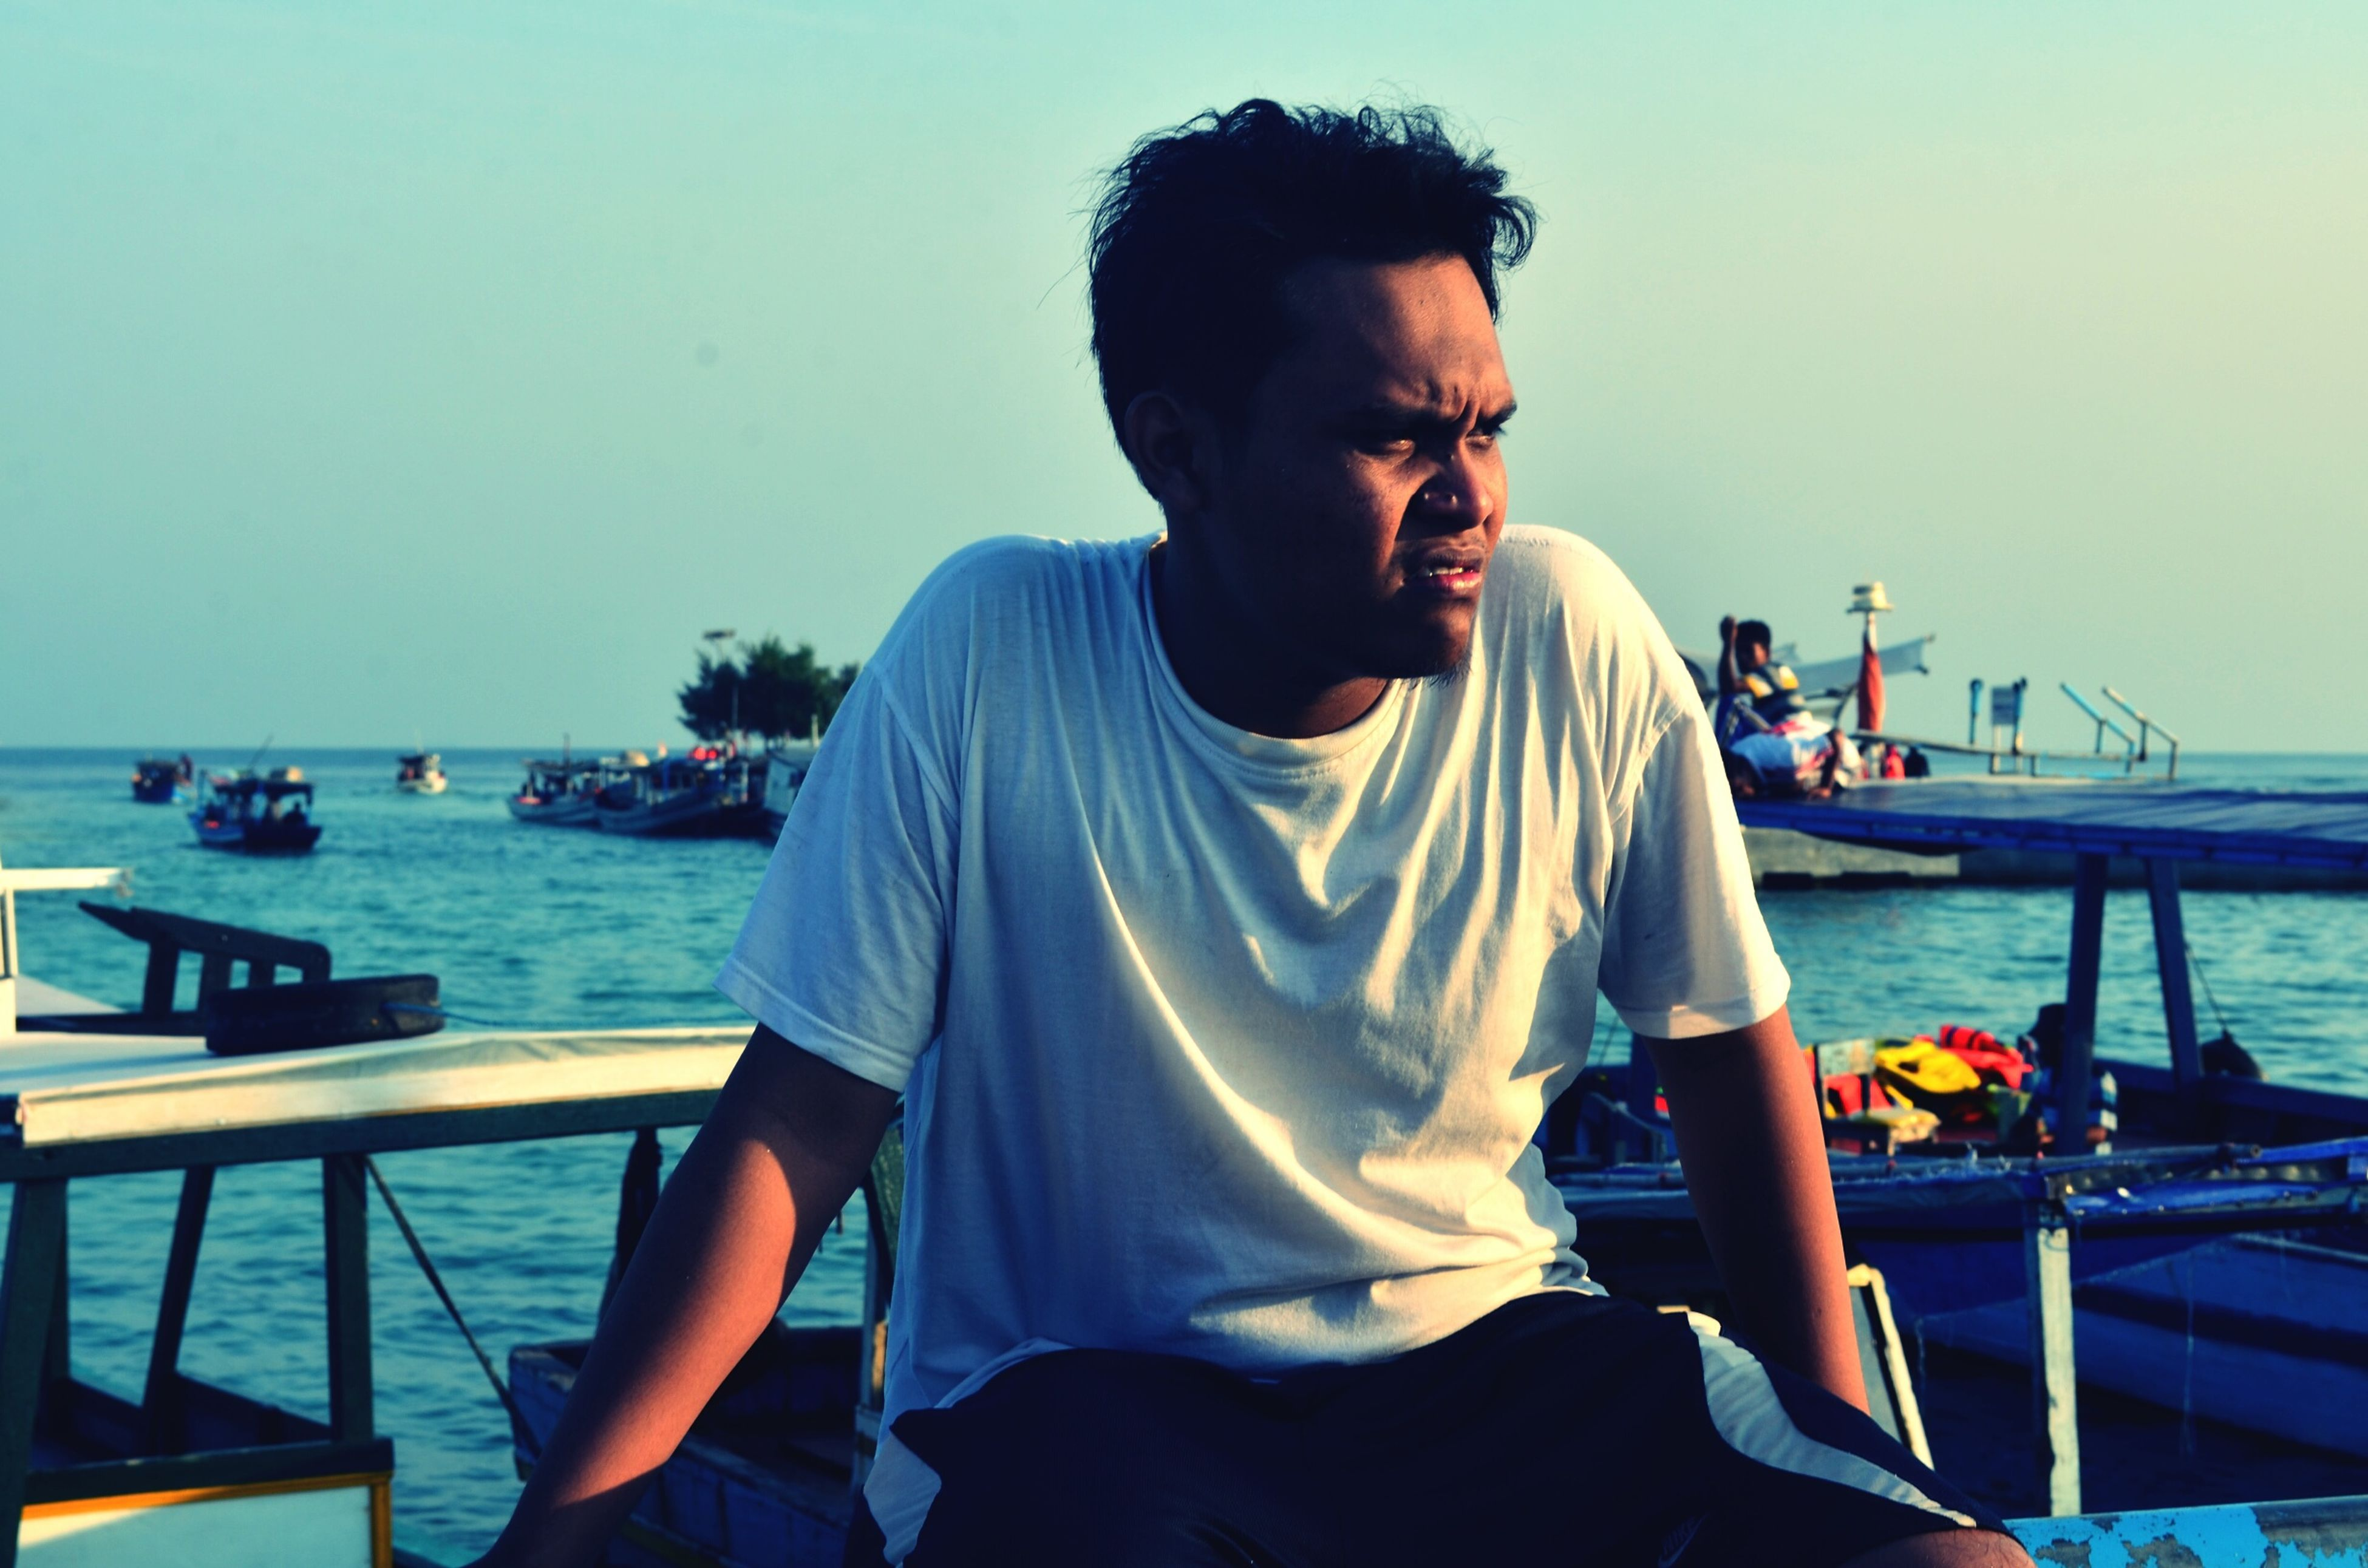 water, nautical vessel, lifestyles, sea, transportation, person, young adult, mode of transport, leisure activity, casual clothing, young men, boat, clear sky, sitting, sunglasses, travel, portrait, waist up